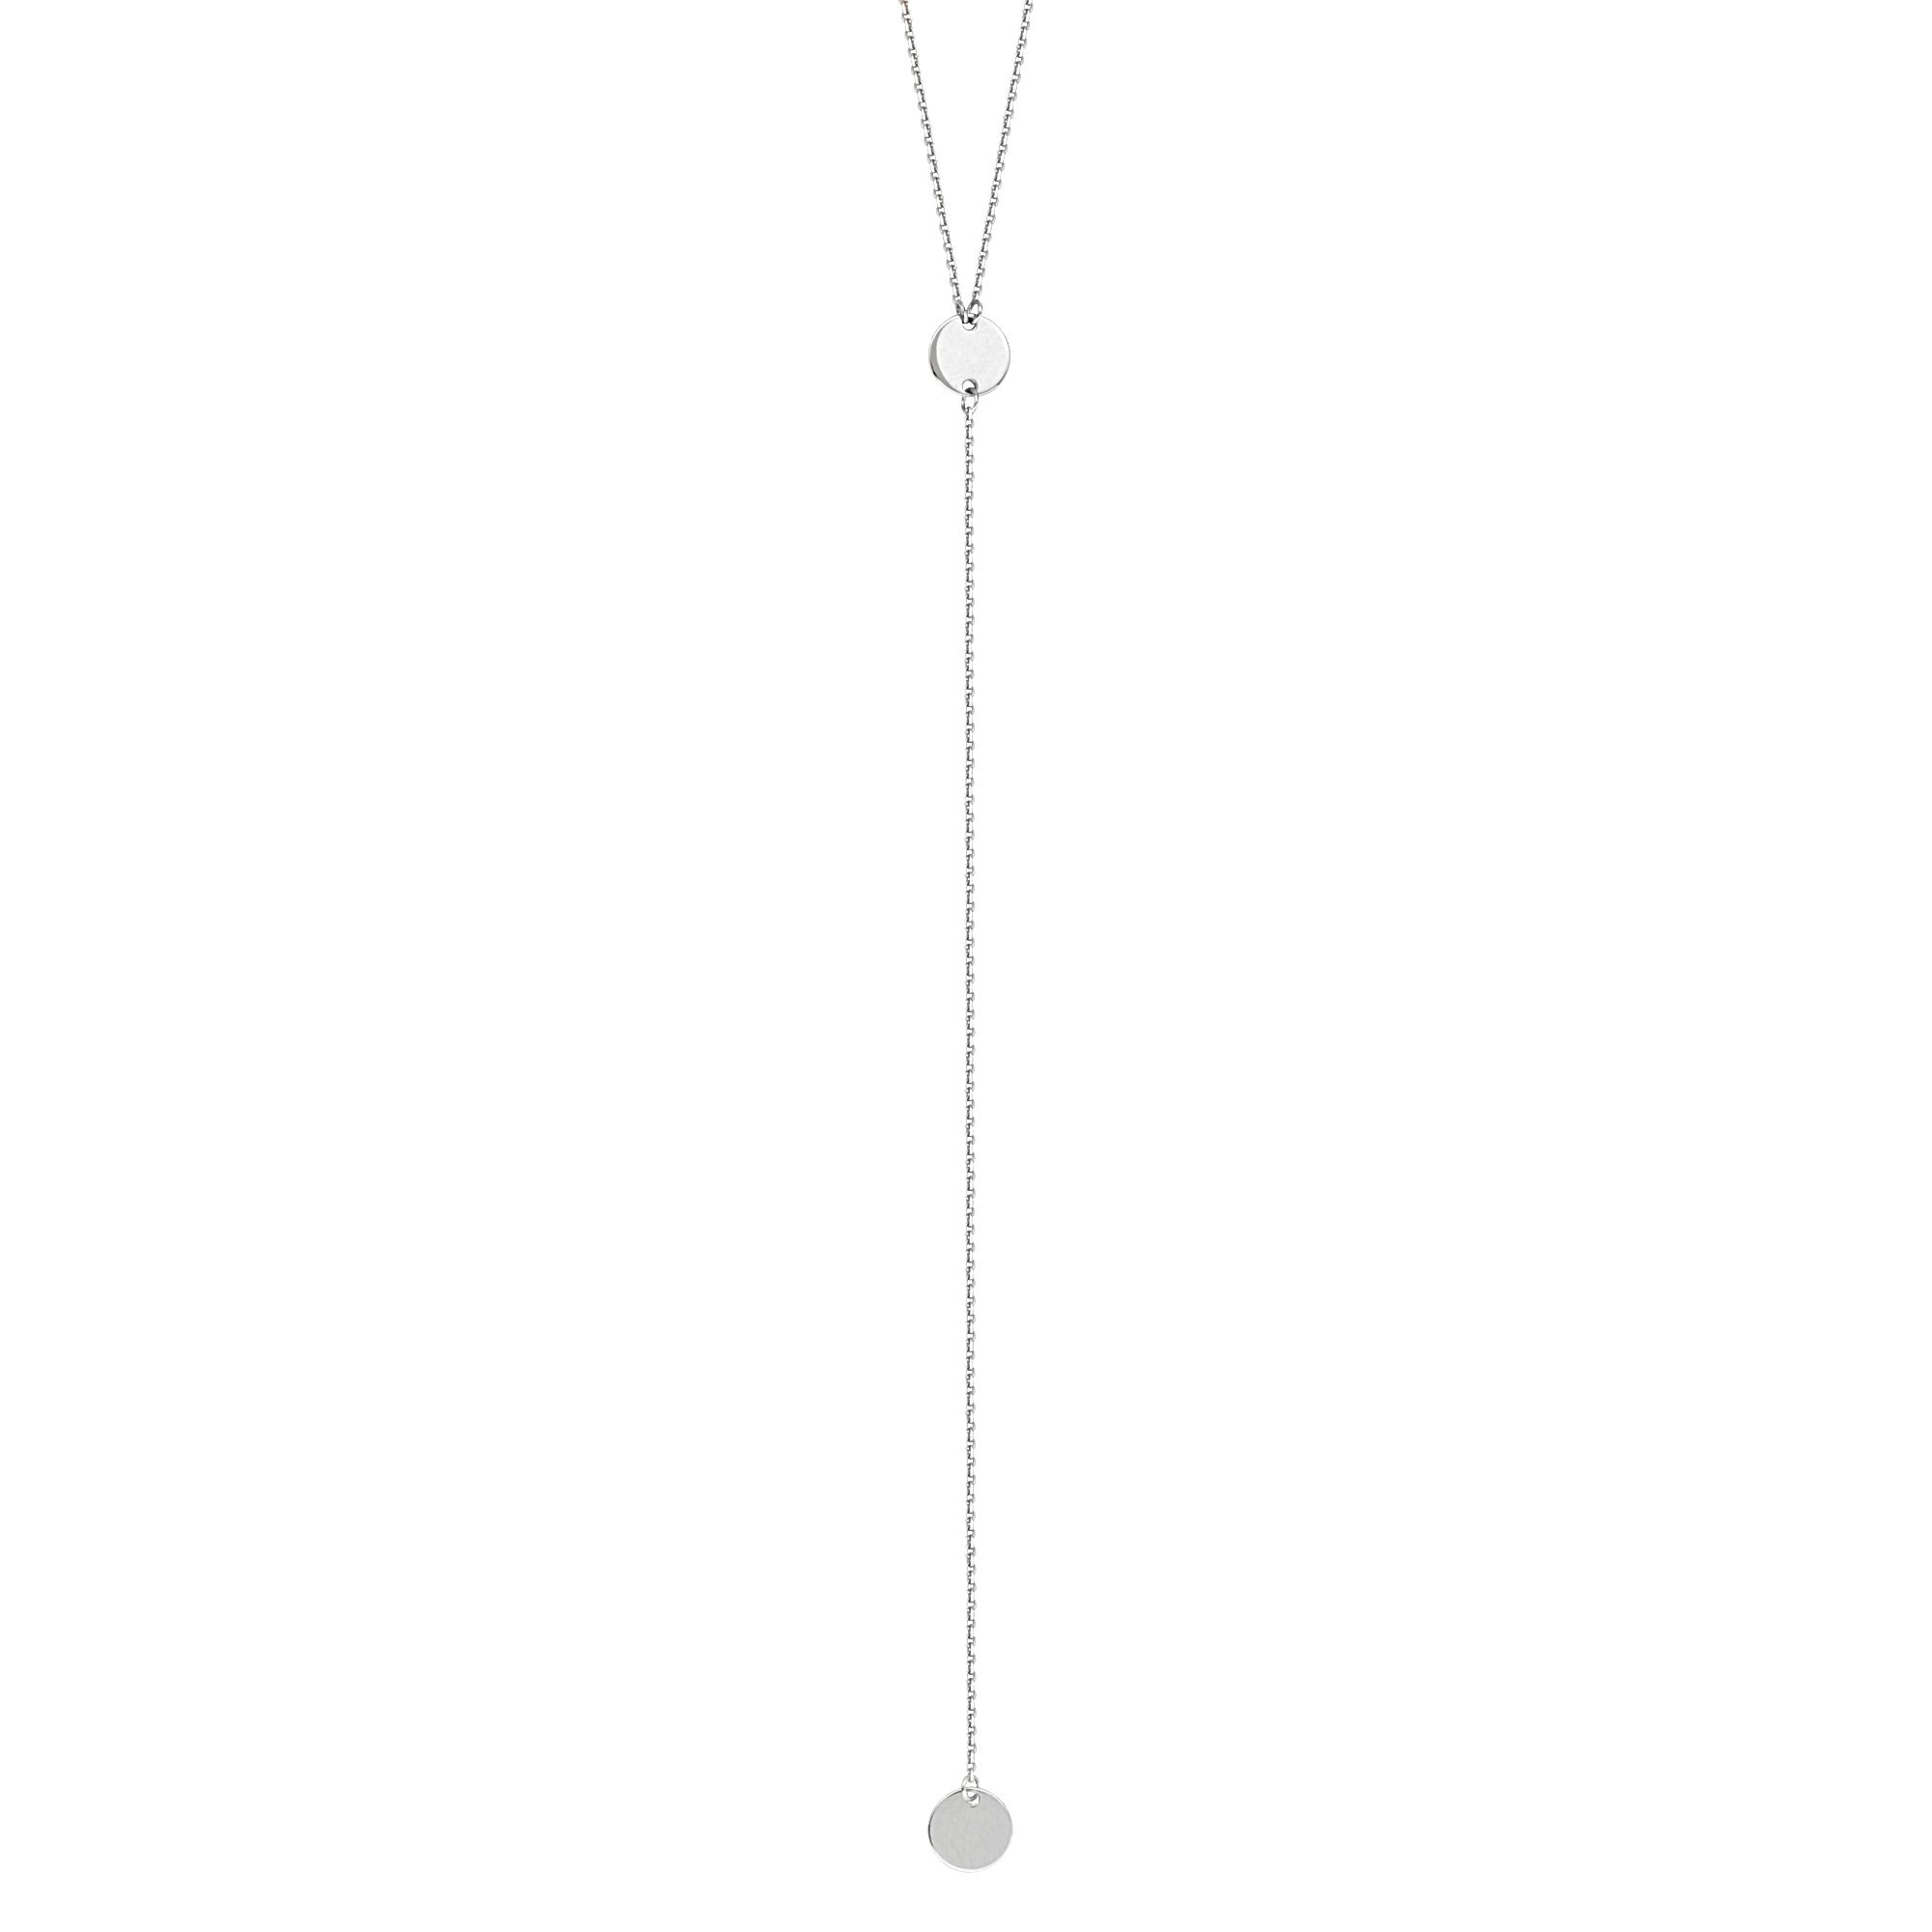 Hawley Street Y-style Lariat Necklace with Disks 14k White Gold by AzureBella Jewelry